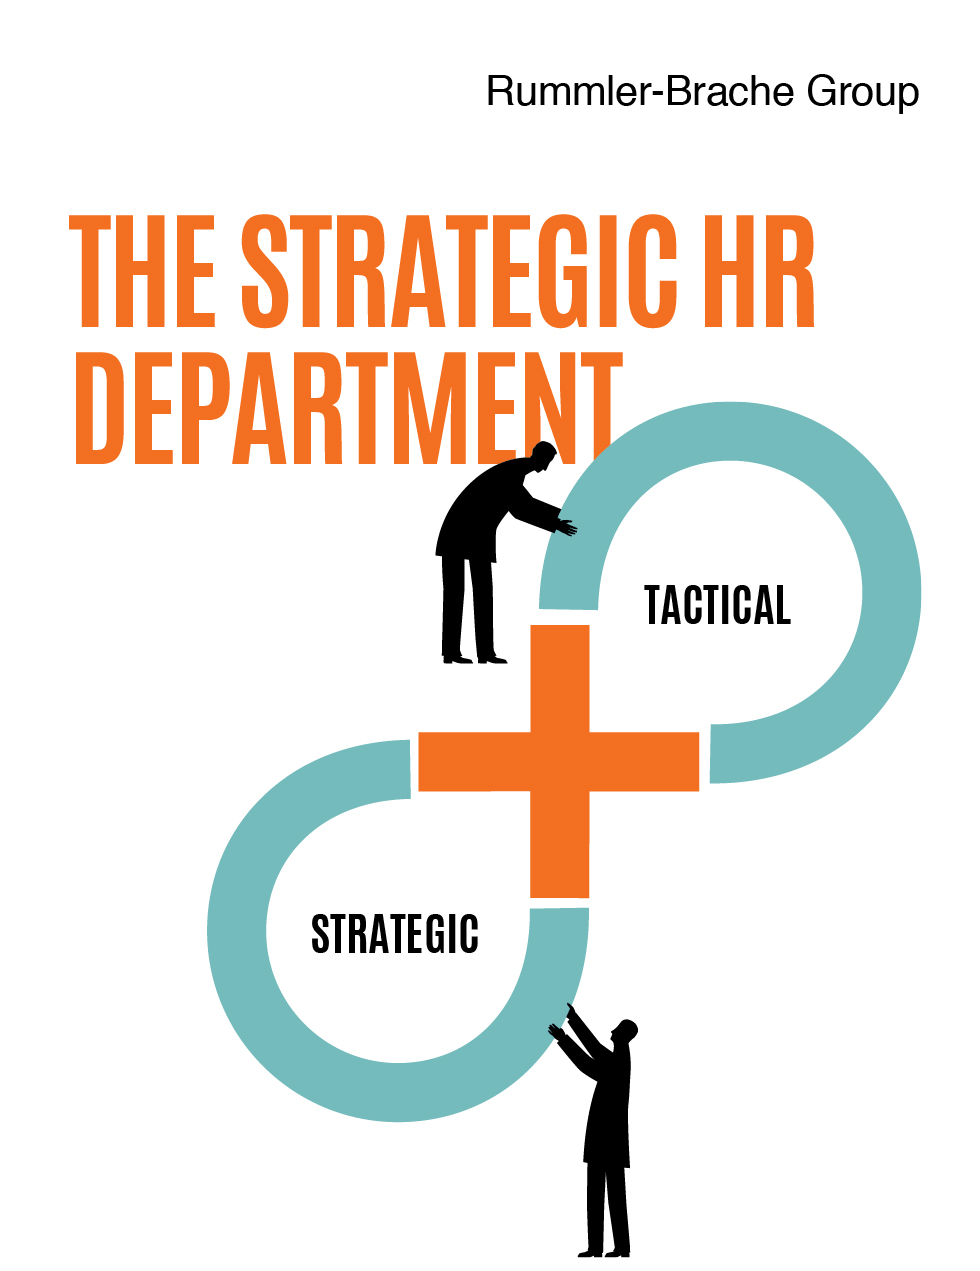 The Strategic HR Department